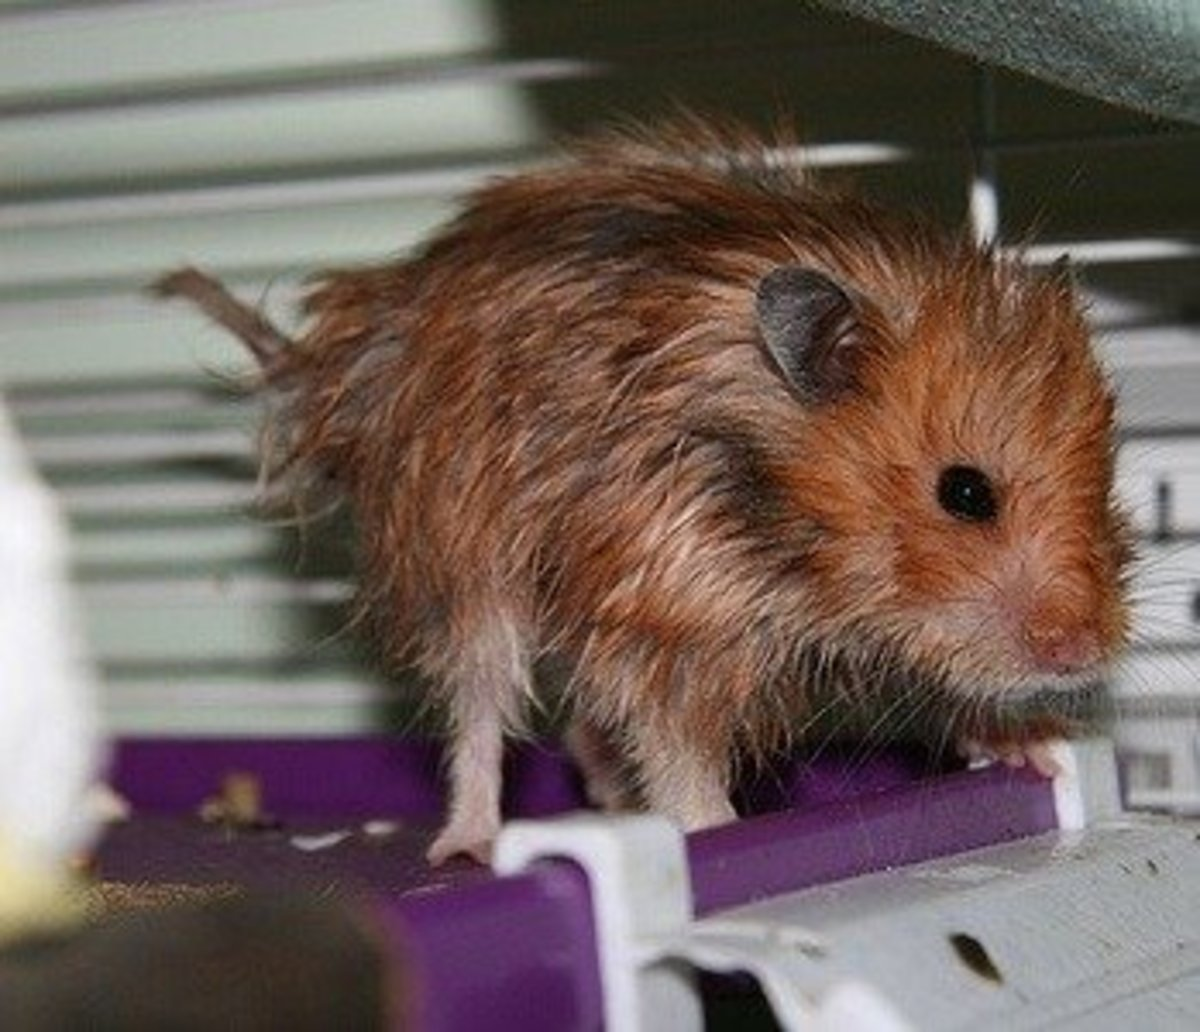 A Syrian Hamster in foul condition suffering from wet tail.